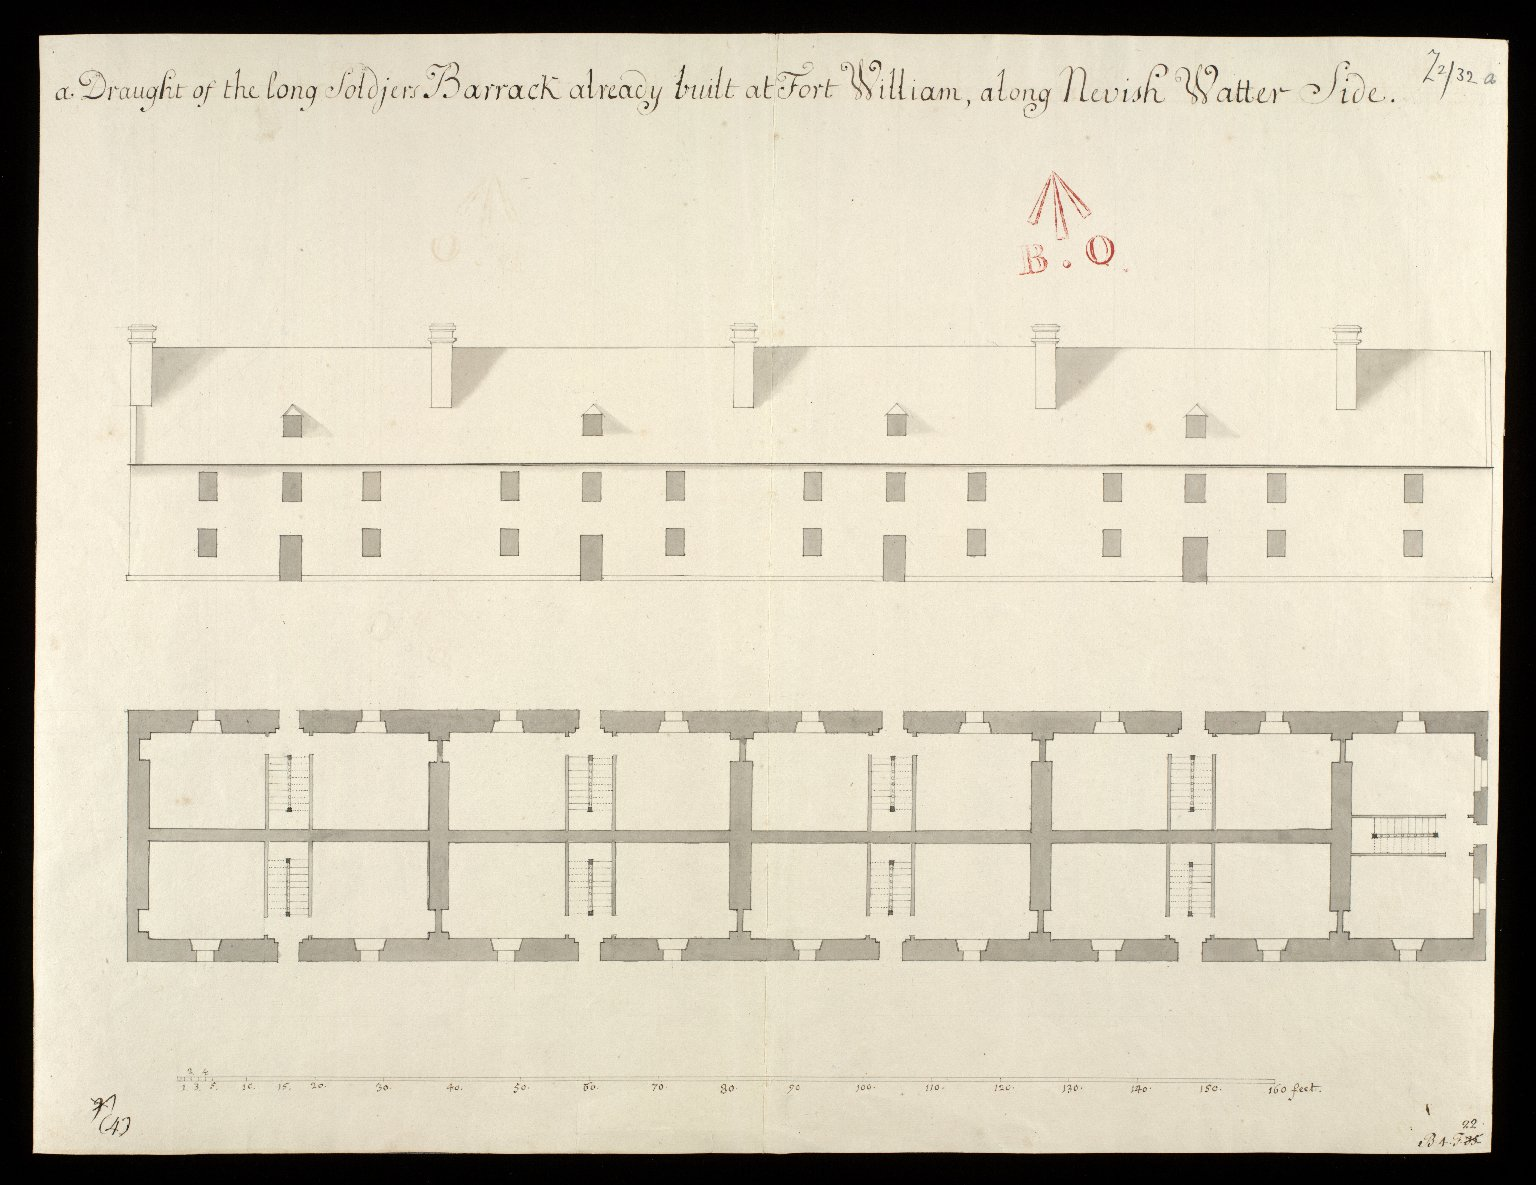 A Draught of the long soldjers barrack already built at Fort William, along Nevish Watter side [1 of 1]